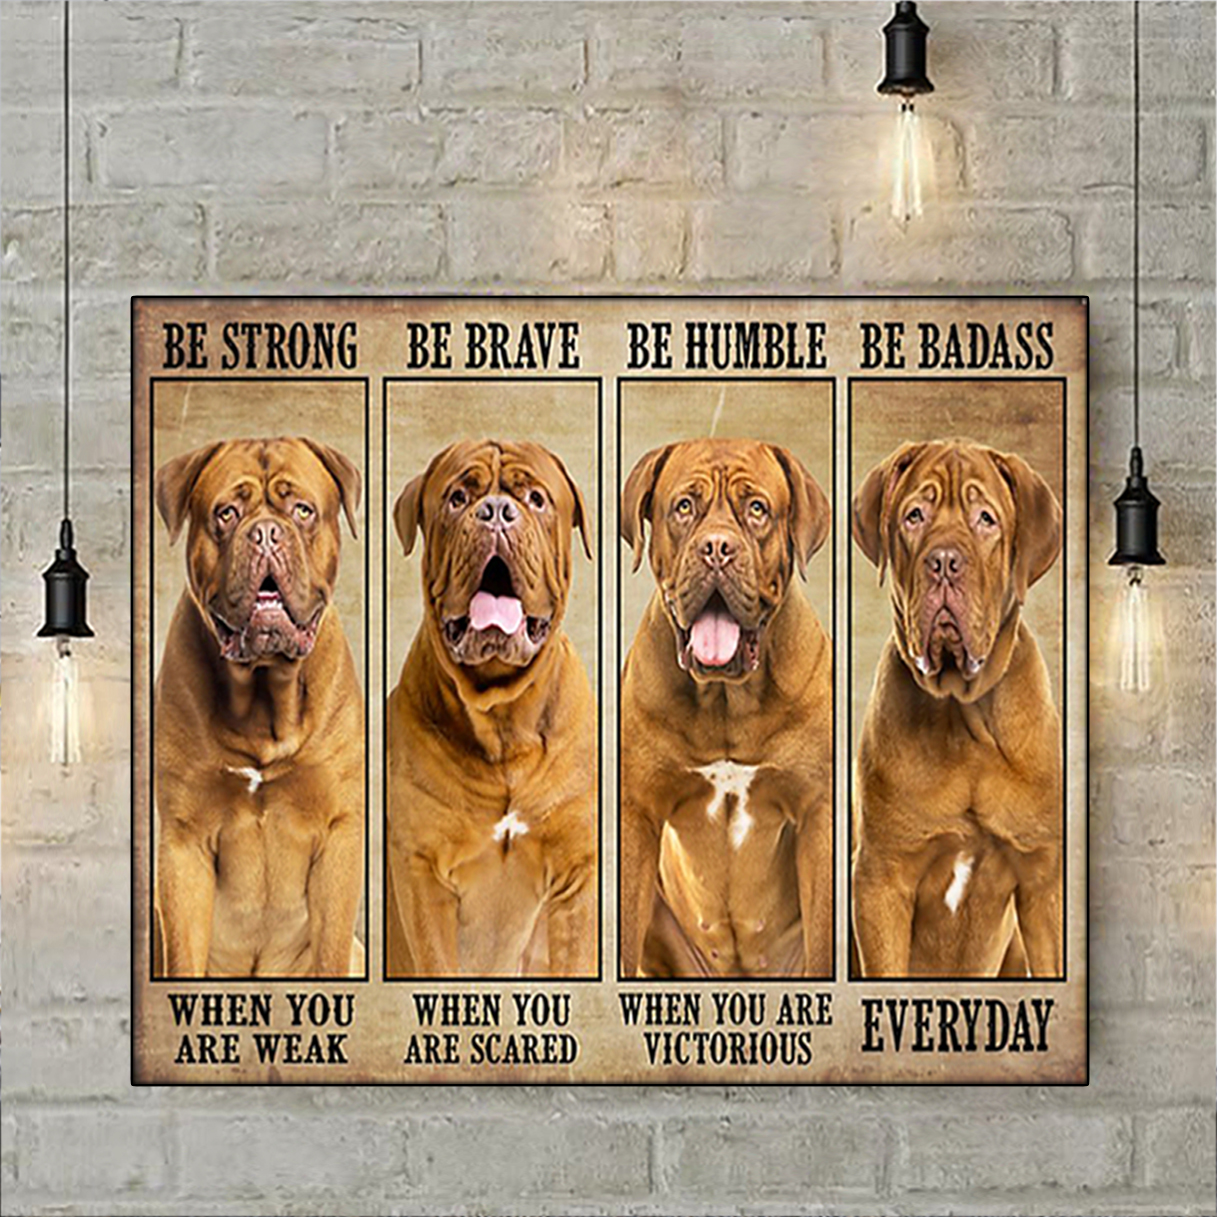 Dogue be strong be brave be humble be badass poster A3